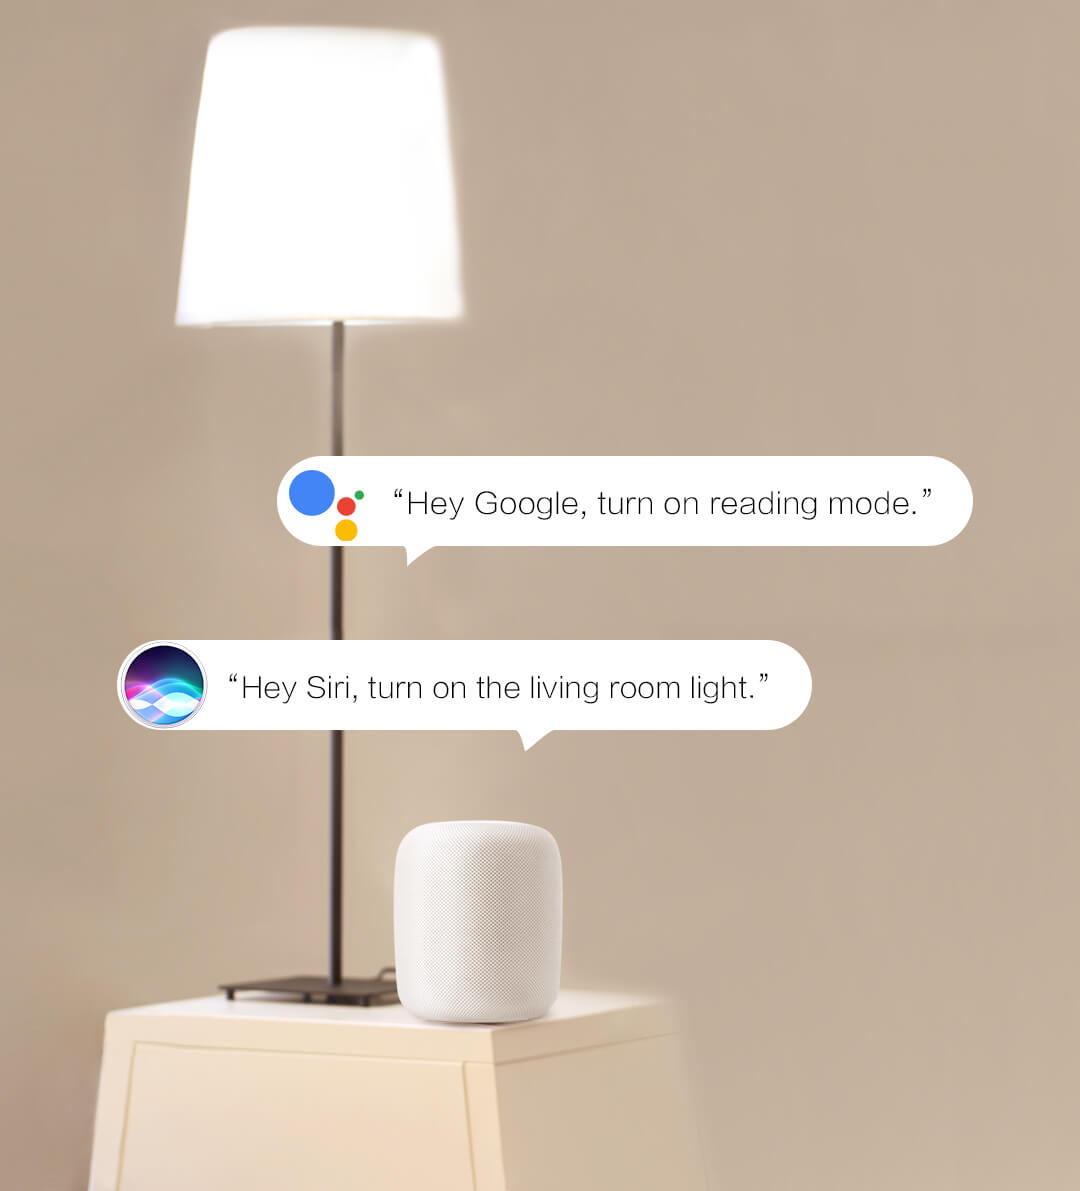 Ask your favorite voice assistant to turn on/off, adjust brightness and color temperature